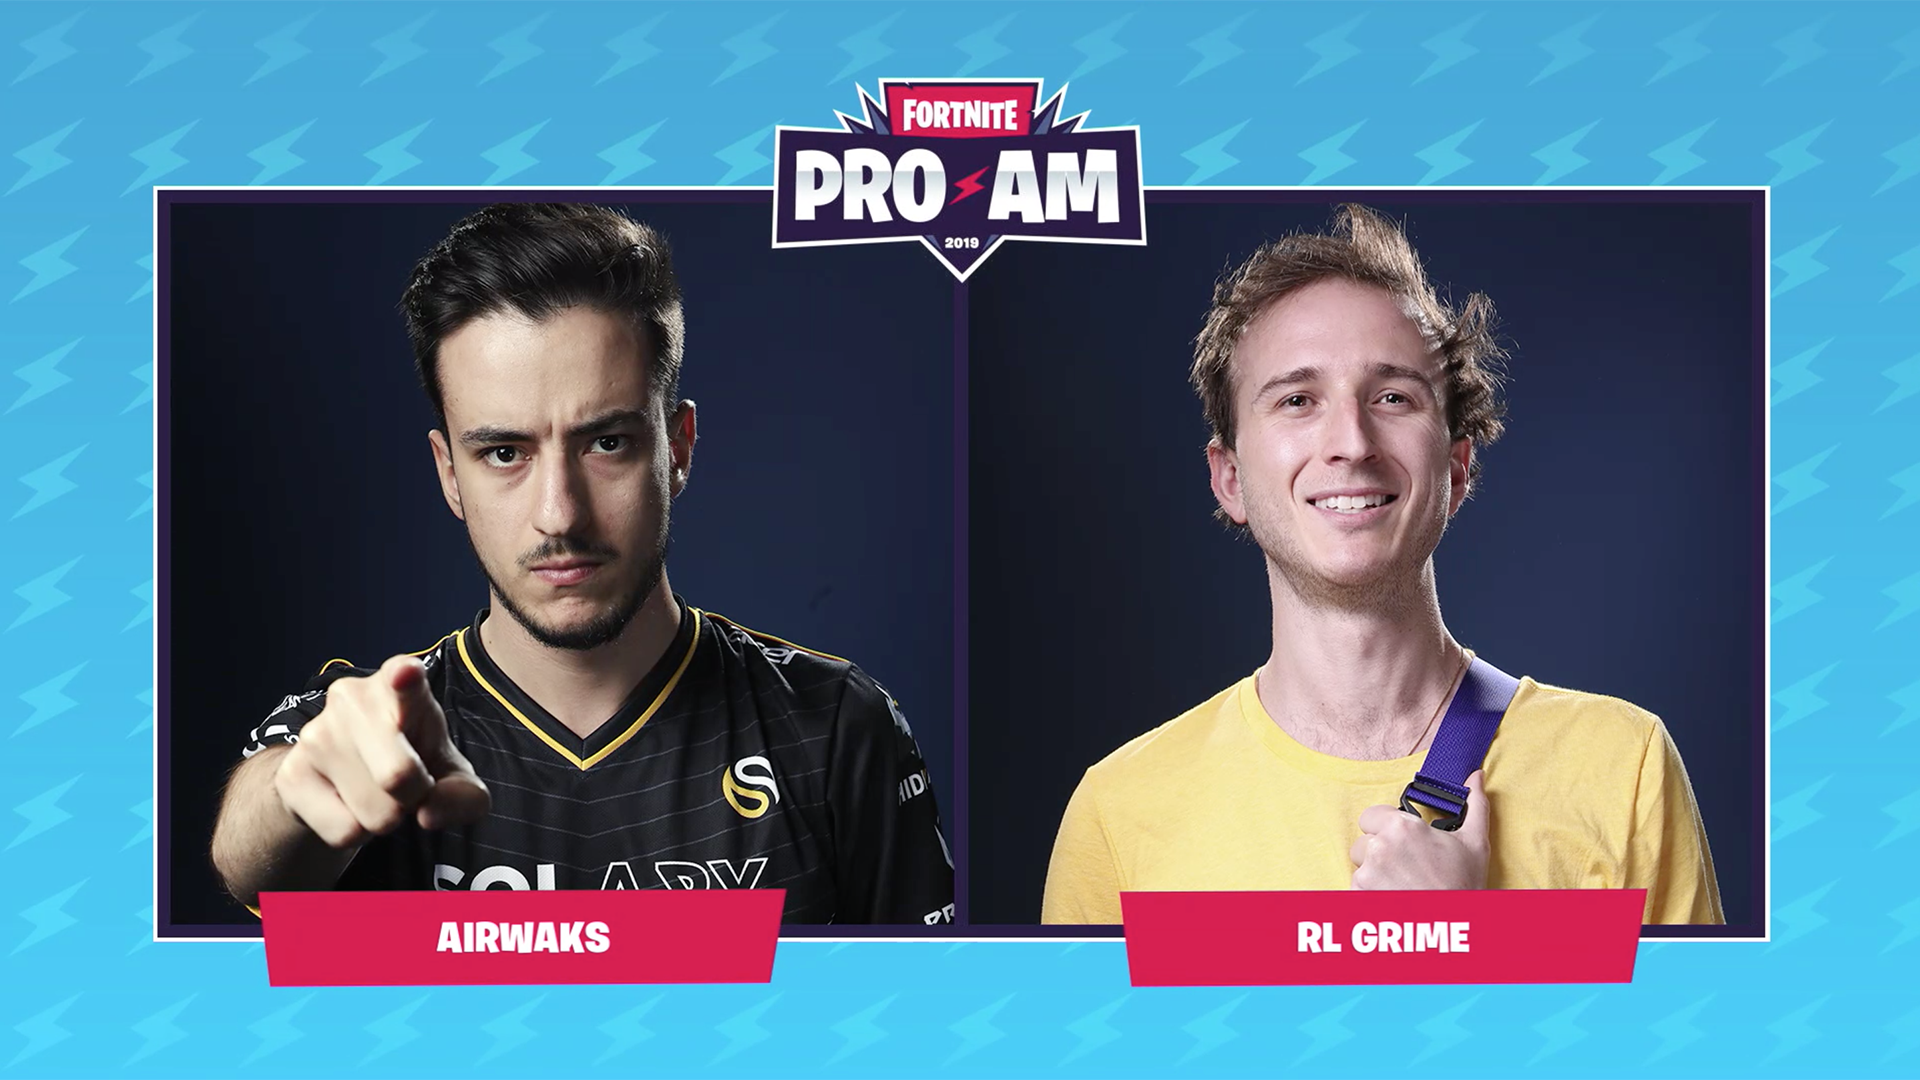 Fortnite Pro-Am 2019 results: Airwaks, RL Grime win star-studded event